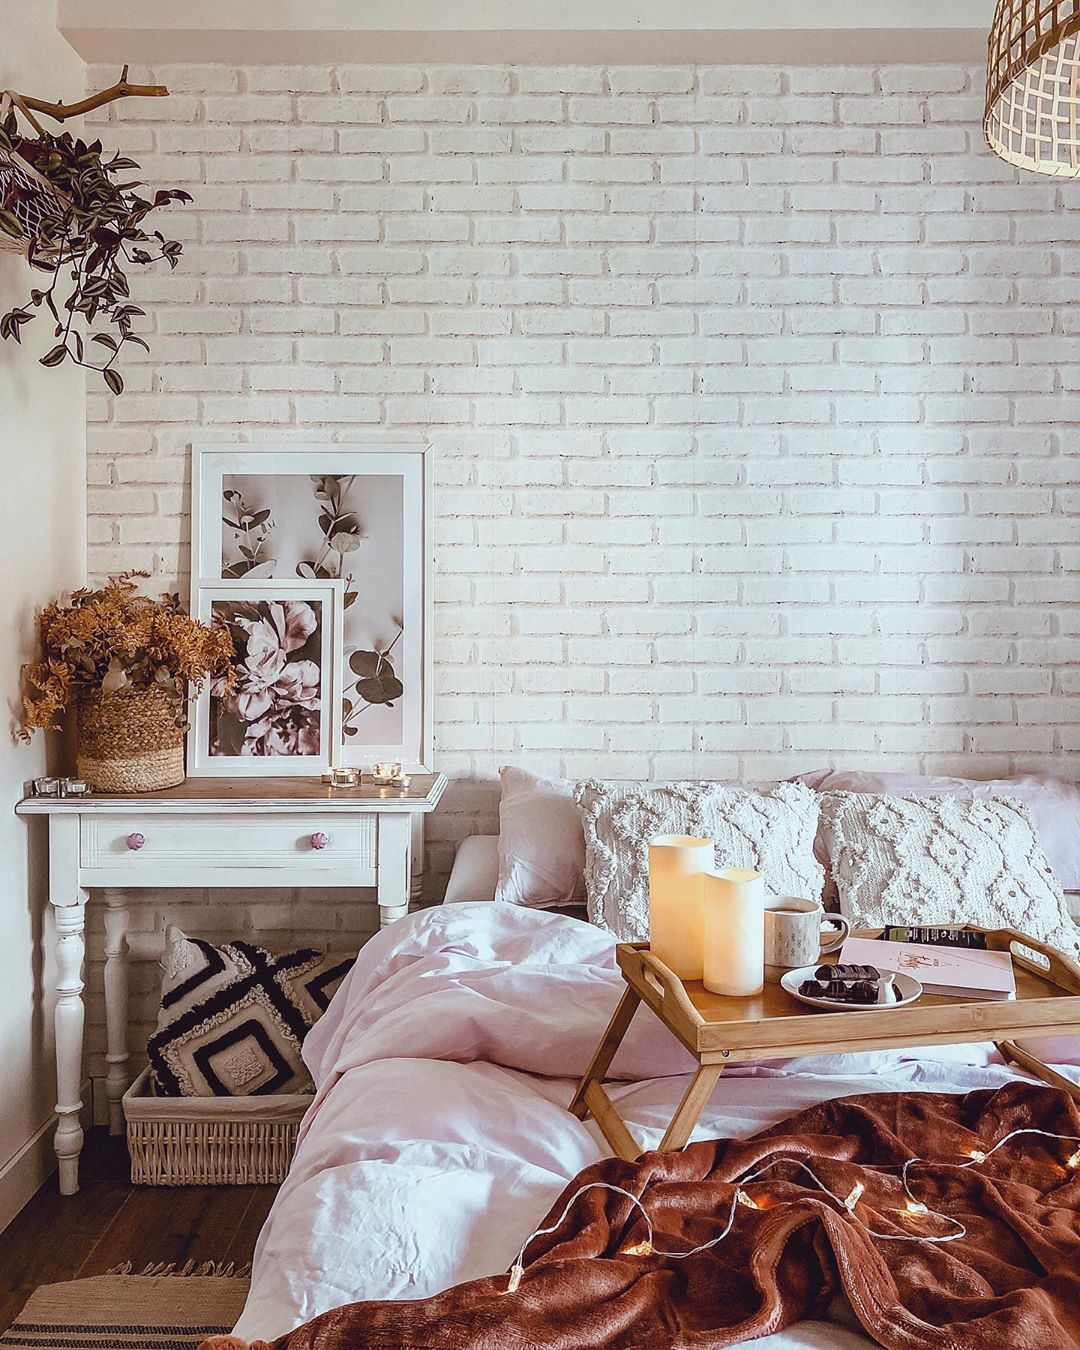 Old White Brick Wall Wallpaper In 2020 Brick Wallpaper Living Room White Brick Wall Living Room Brick Wall Bedroom